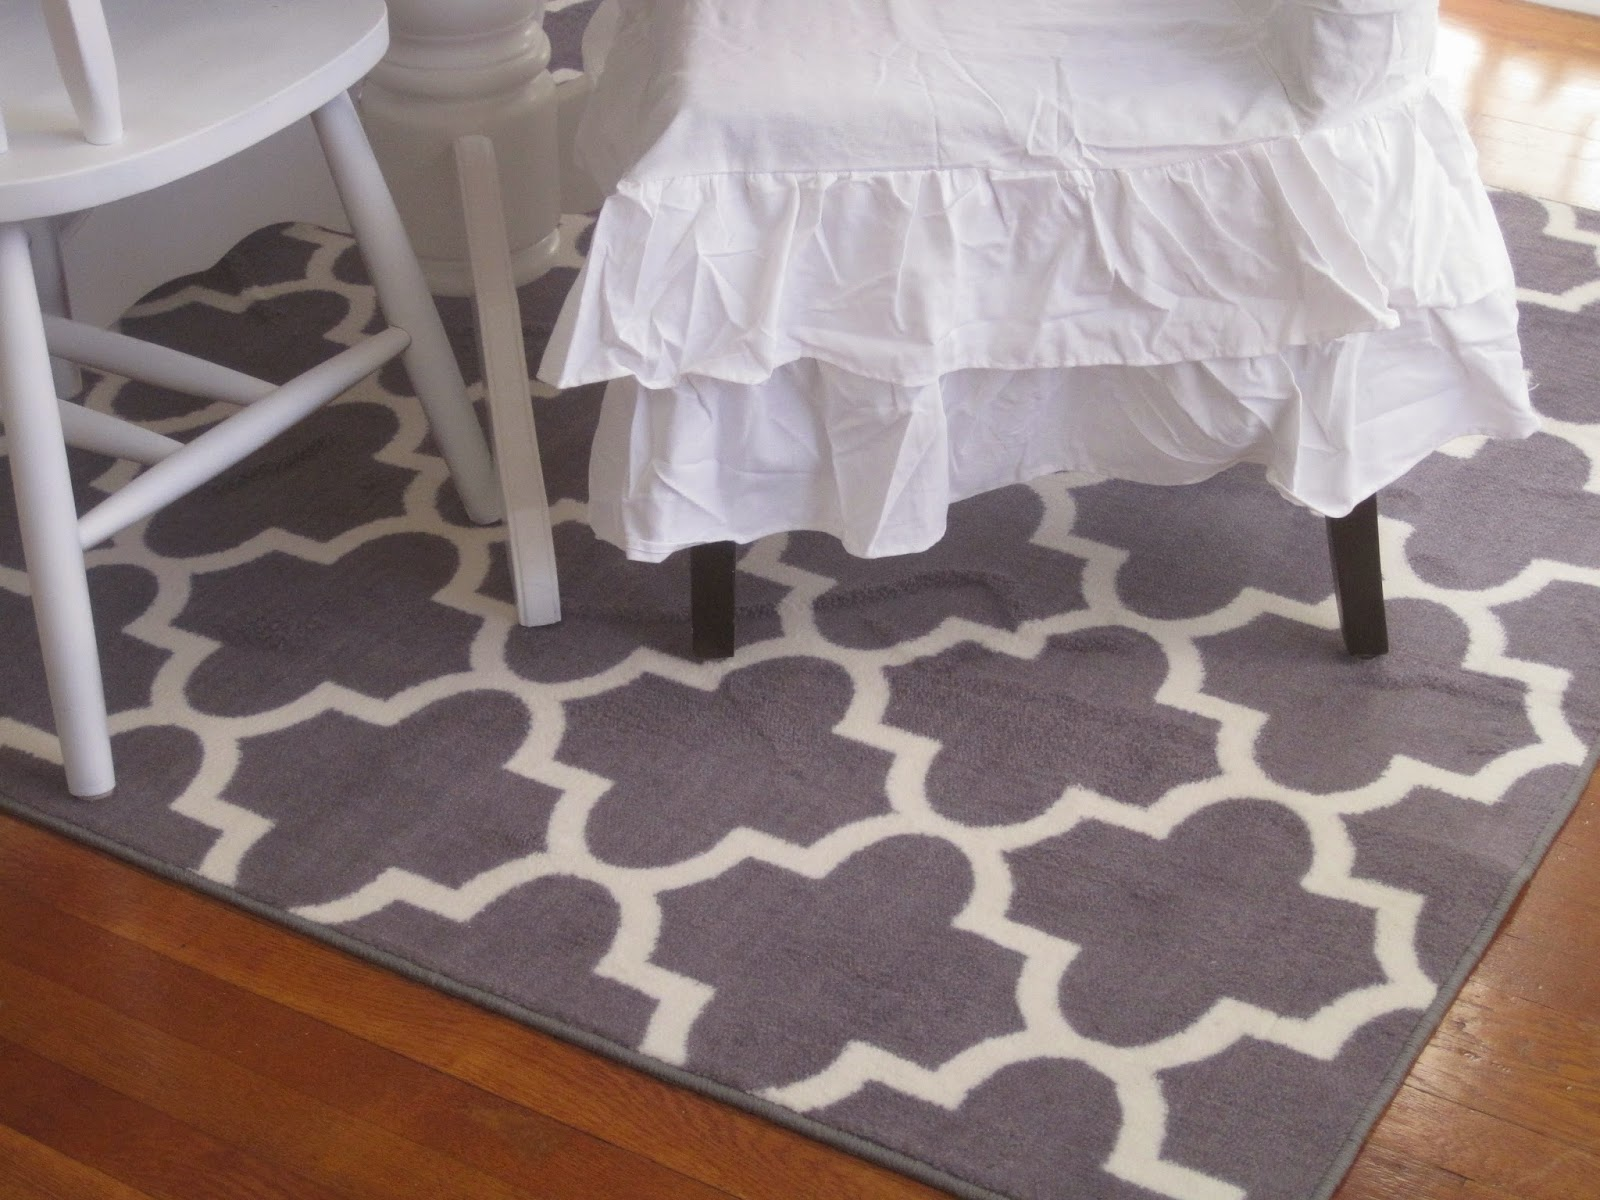 Decorated Chaos New Rug And Slipcovers In The Dining Room Saxony Carpet Pile Low Meaning Designs